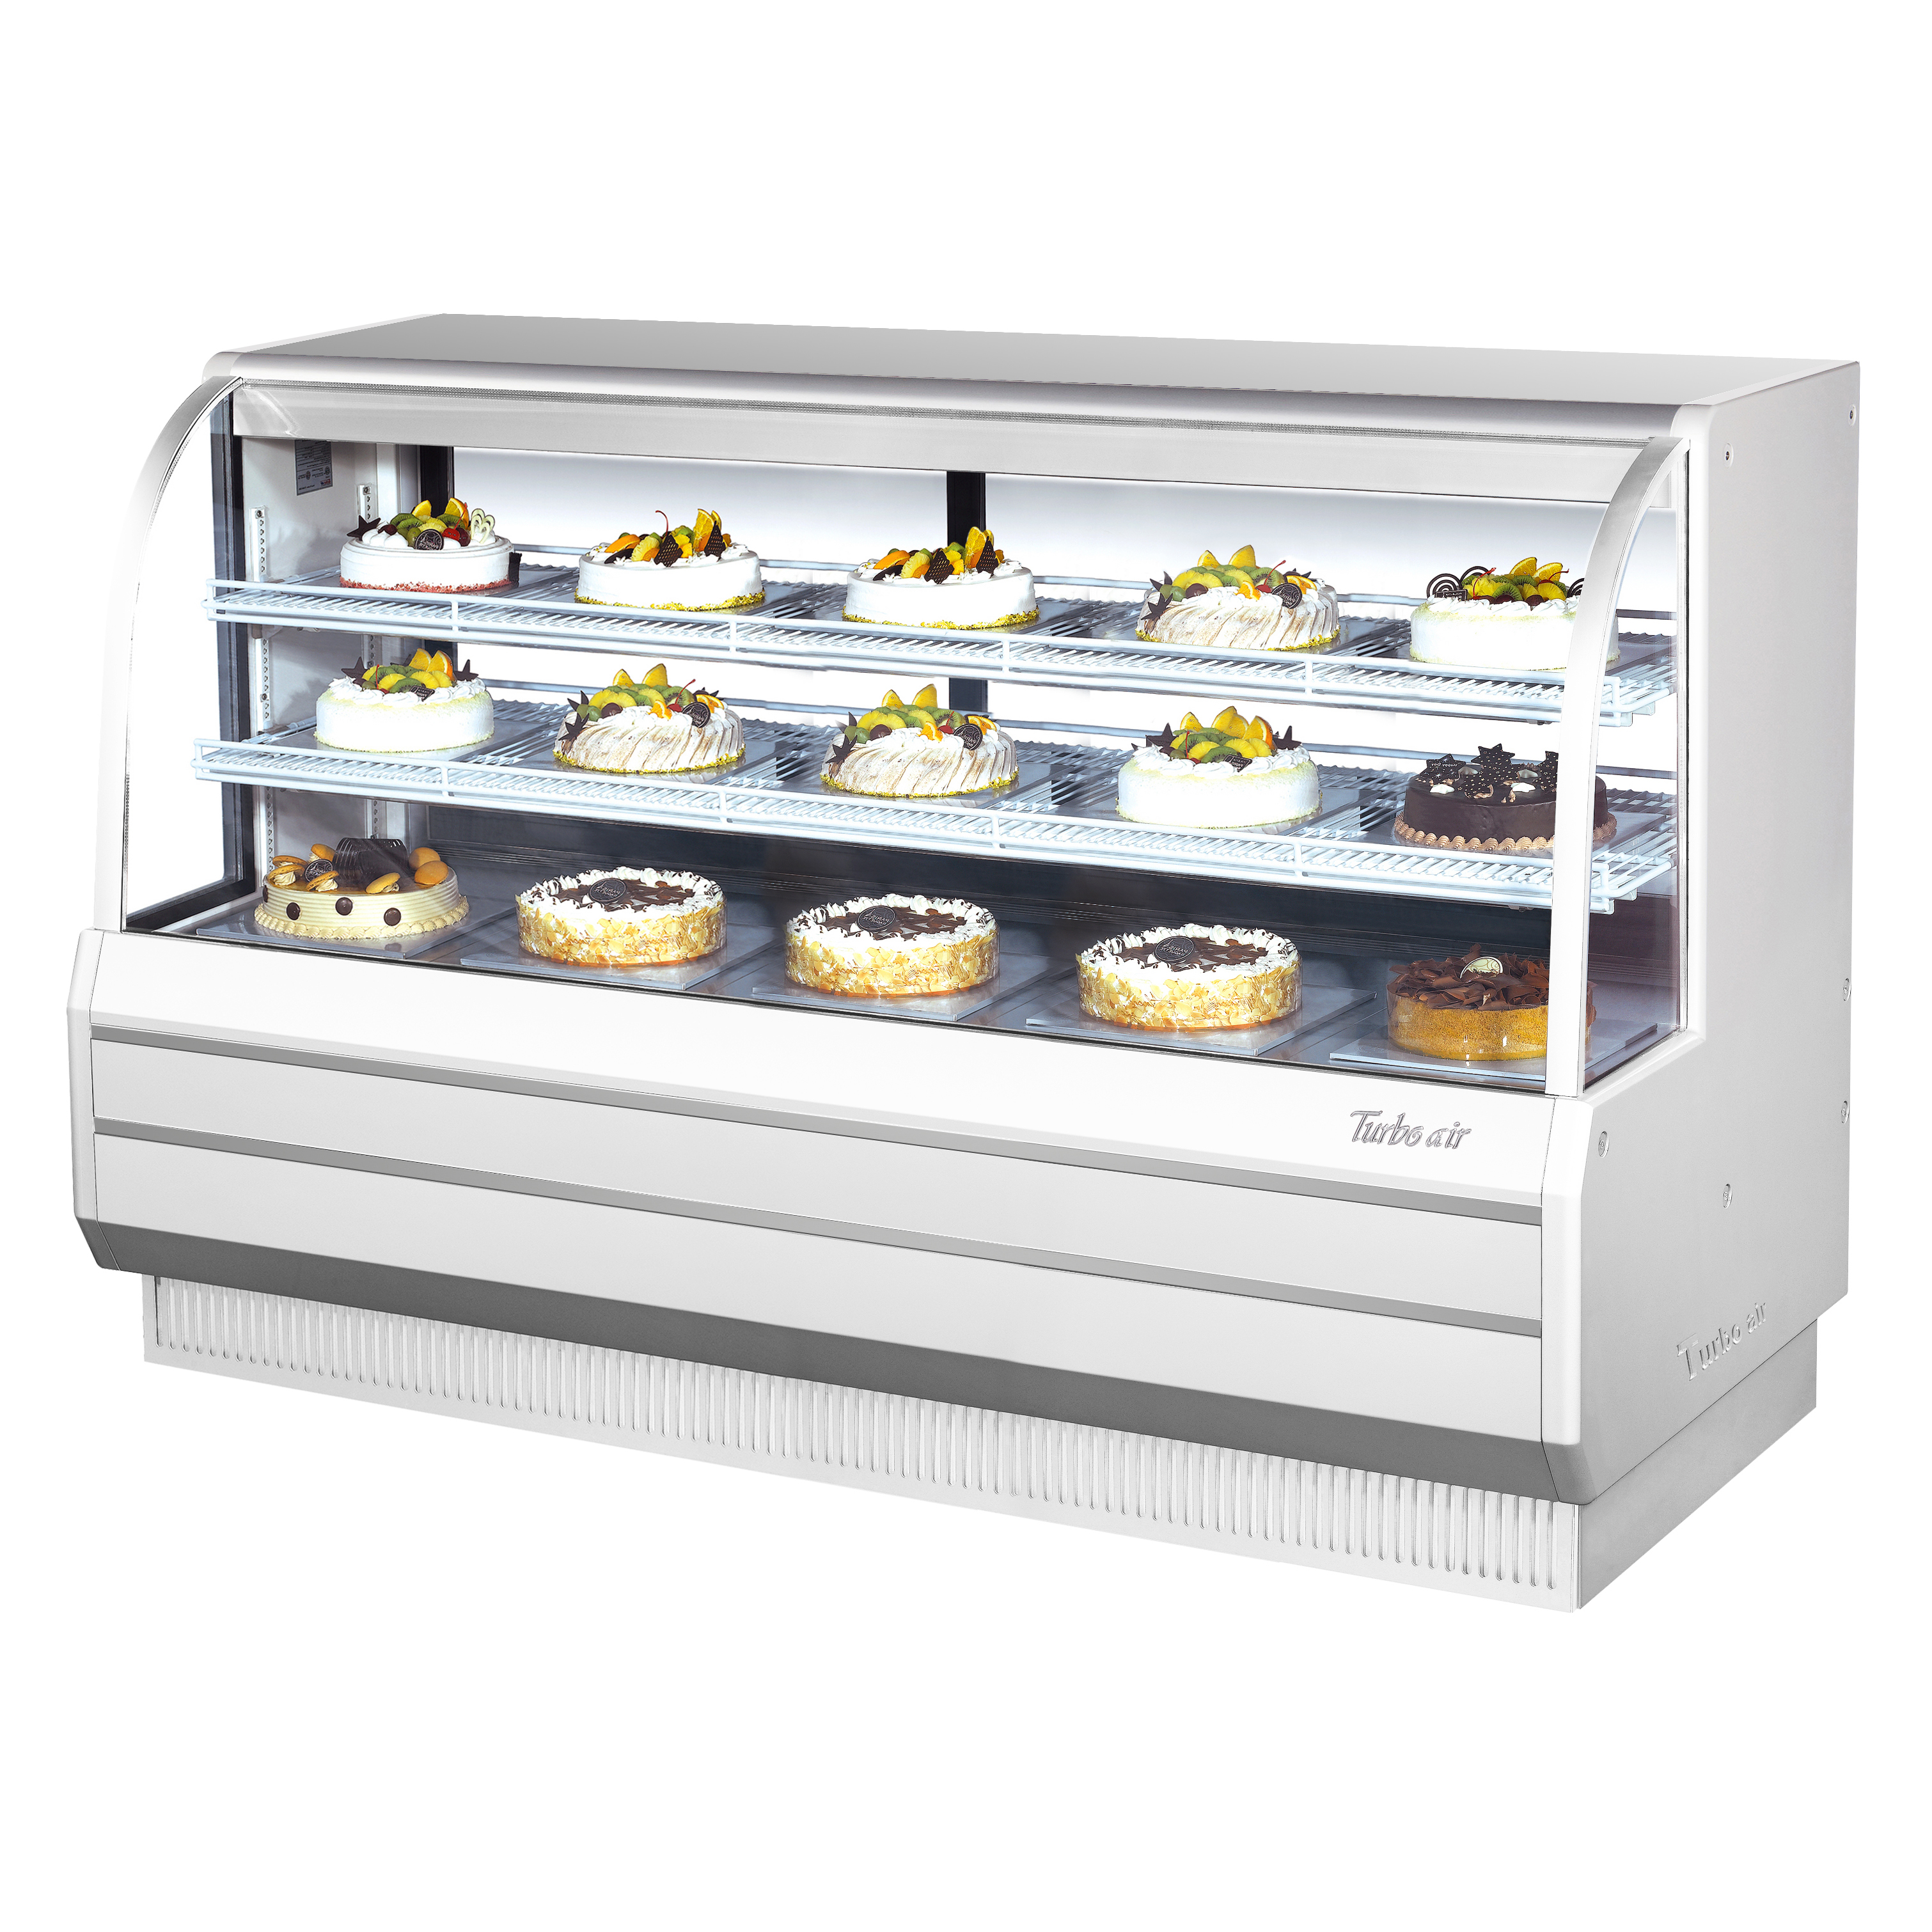 Turbo Air TCGB-72DR-W(B) display case, non-refrigerated bakery